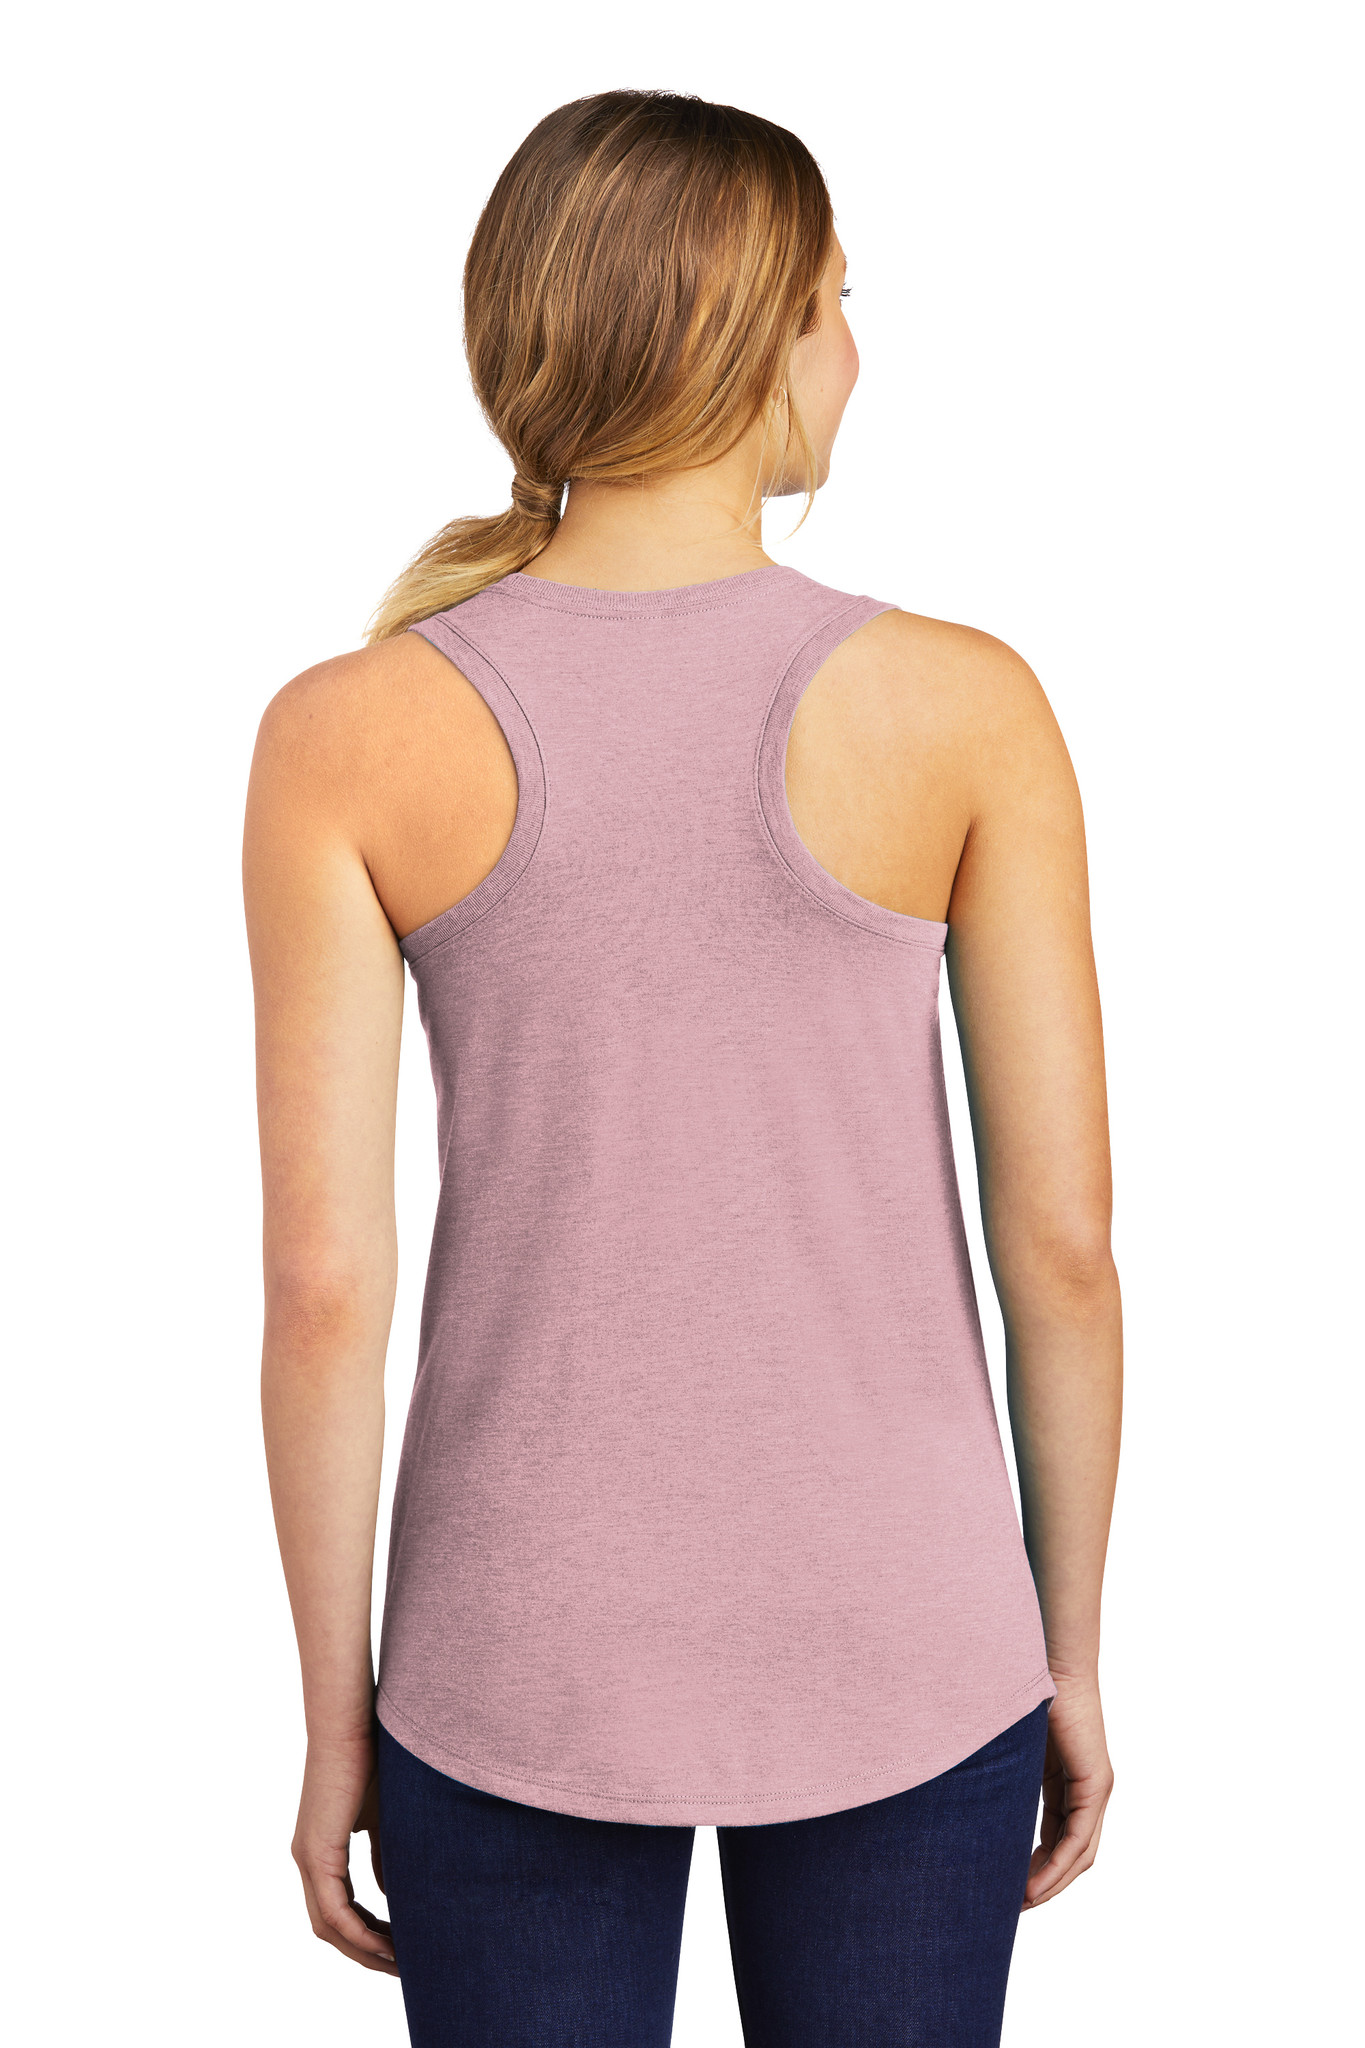 Mad Dash Creations Runner Outline Tank - Women